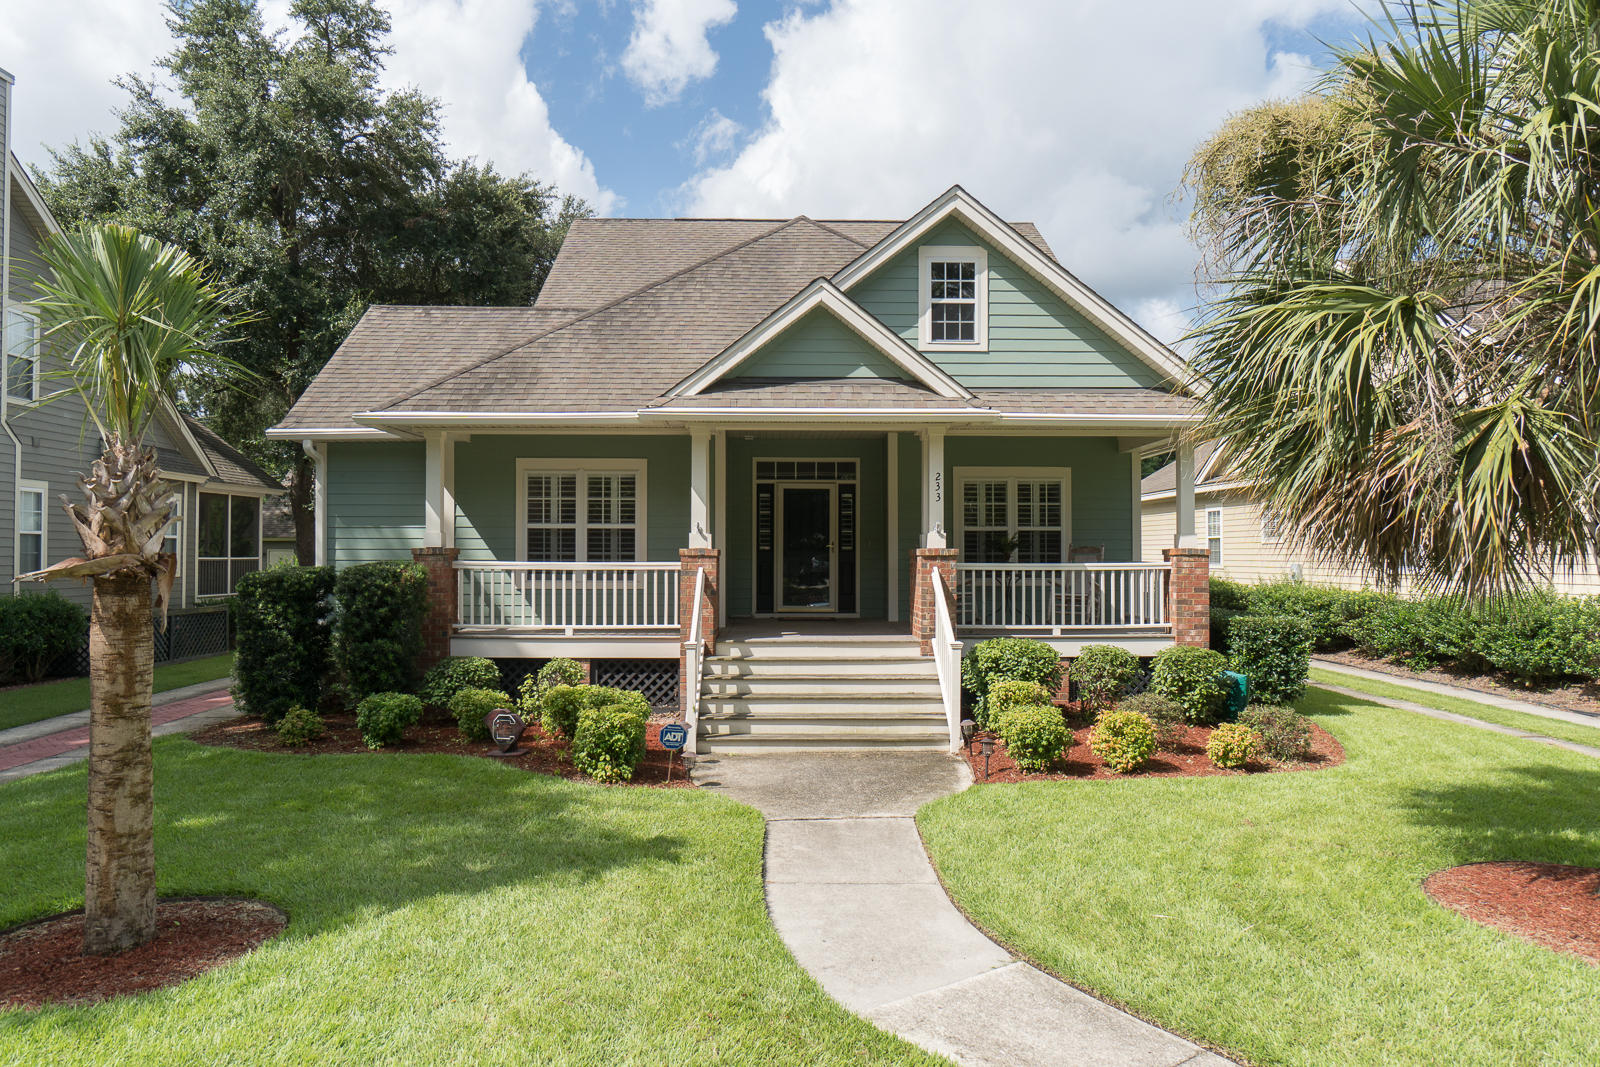 Ainsdale at Shadowmoss Plantation Homes For Sale - 233 Ainsdale, Charleston, SC - 0